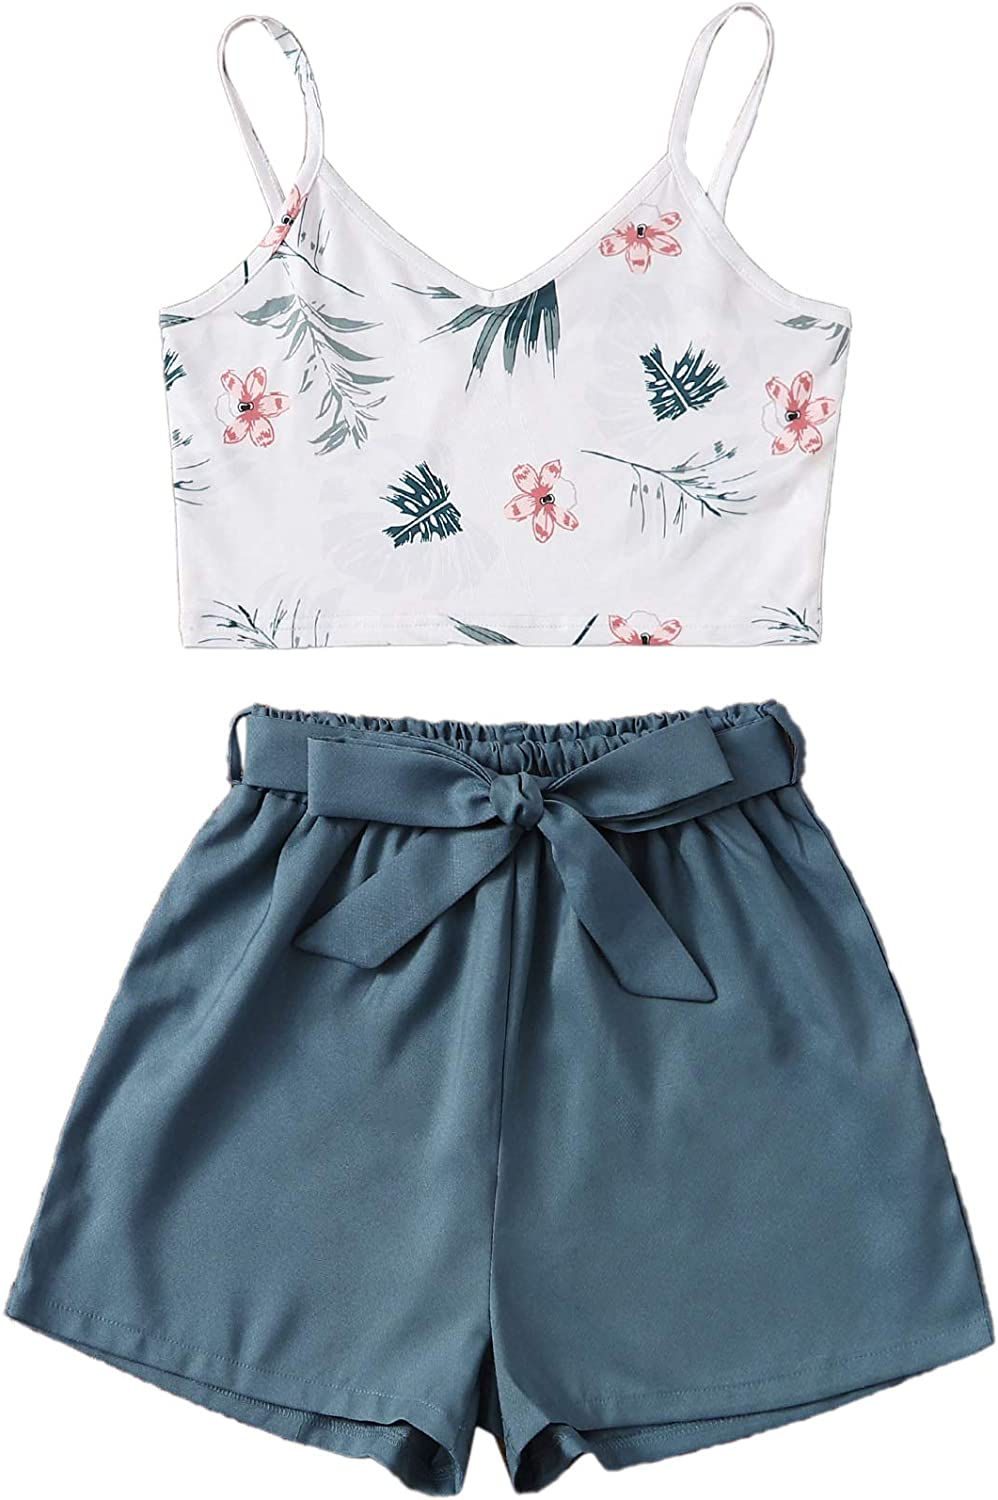 SweatyRocks Women's Two Piece Outfits Boho Floral Print Spaghetti Strap Cami Crop Top with Shorts Set